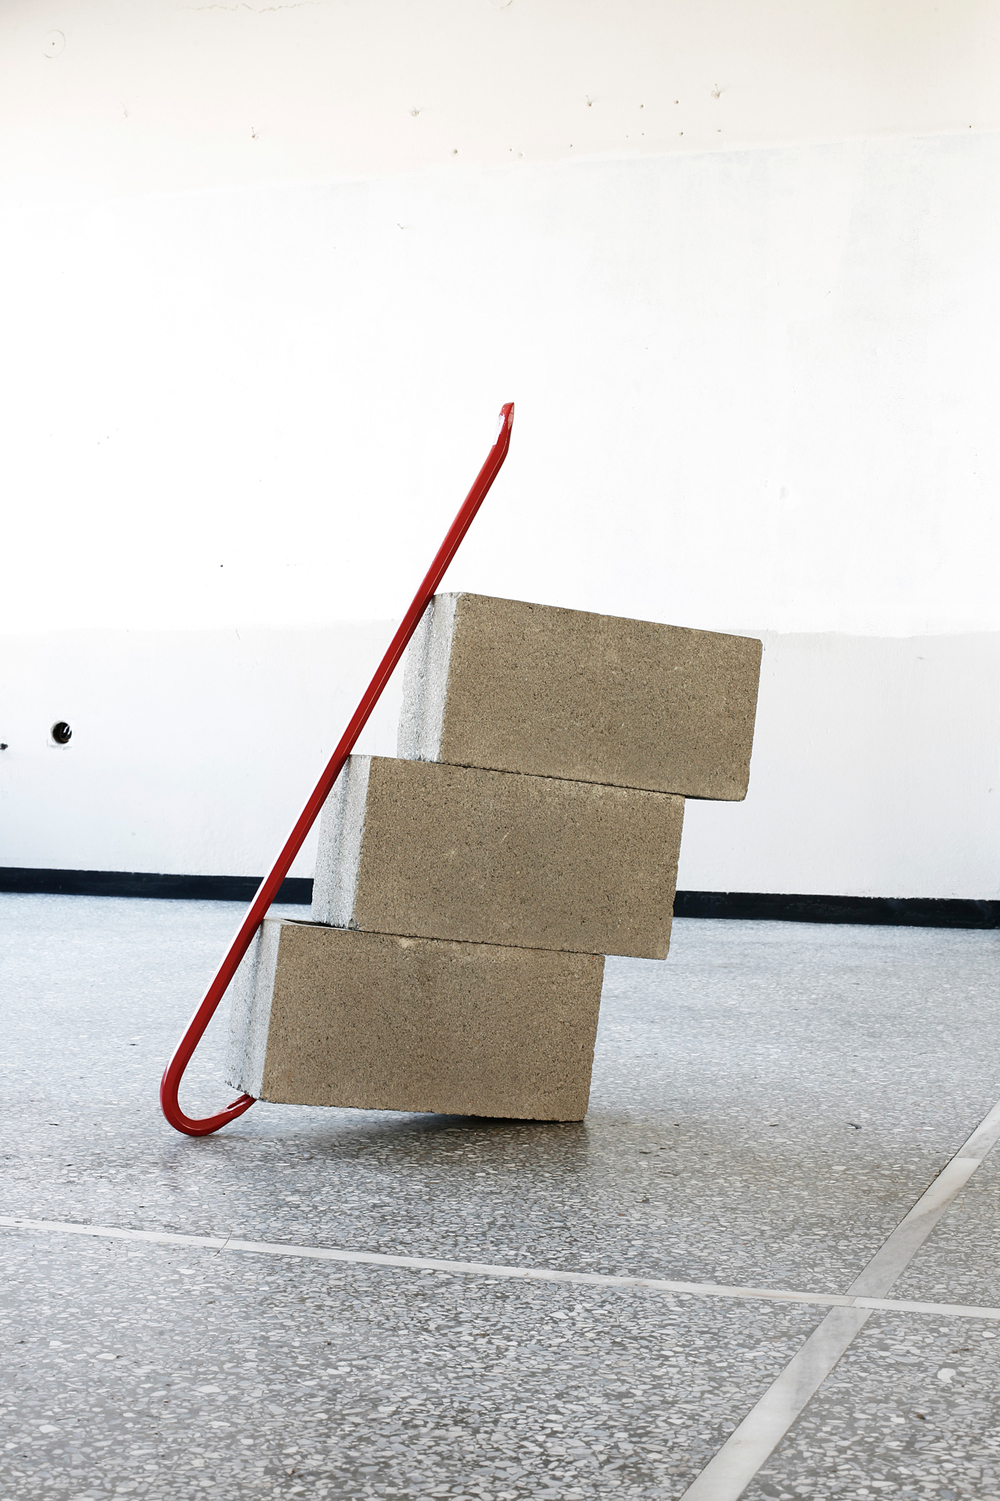 Dylan Lynch  Standing Alone with Three Cinder Blocks (Red)  2013 Crowbar, cinder blocks  32 x 27 x 5.5 inches